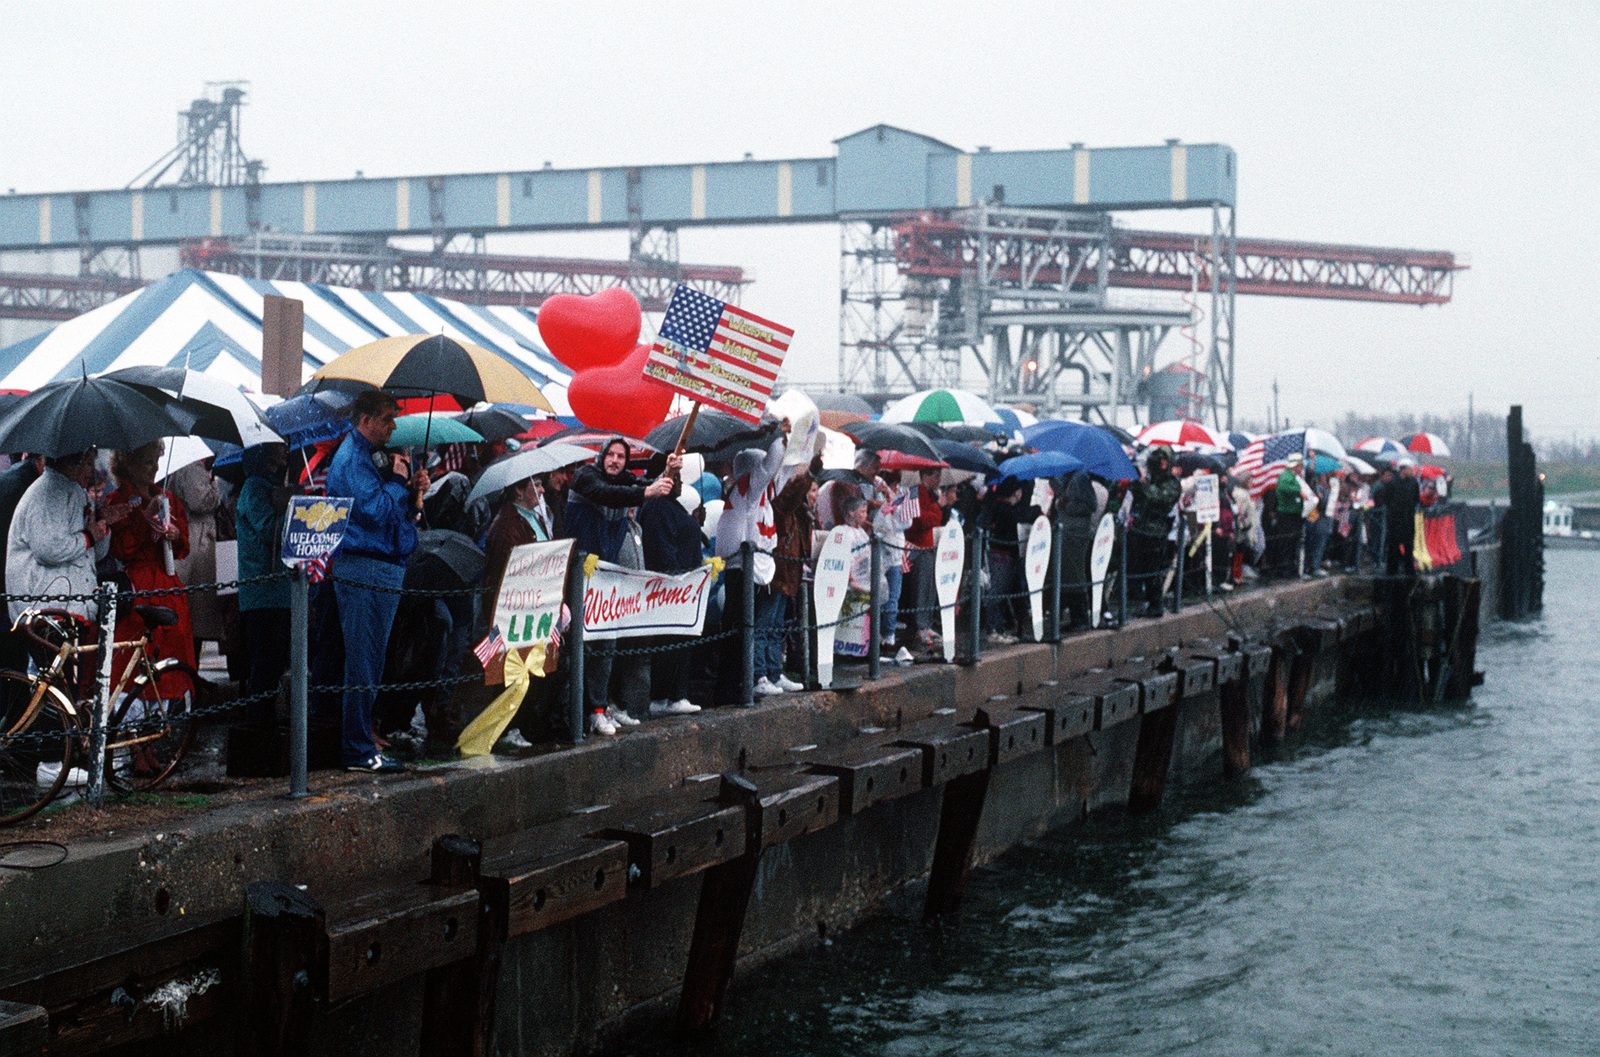 Family and friends of crew members aboard the combat stores ship USS SYLVANIA (AFS-2) wait in the rain to welcome their loved ones as the ship returns from deployment in the Persian Gulf during Operation Desert Storm